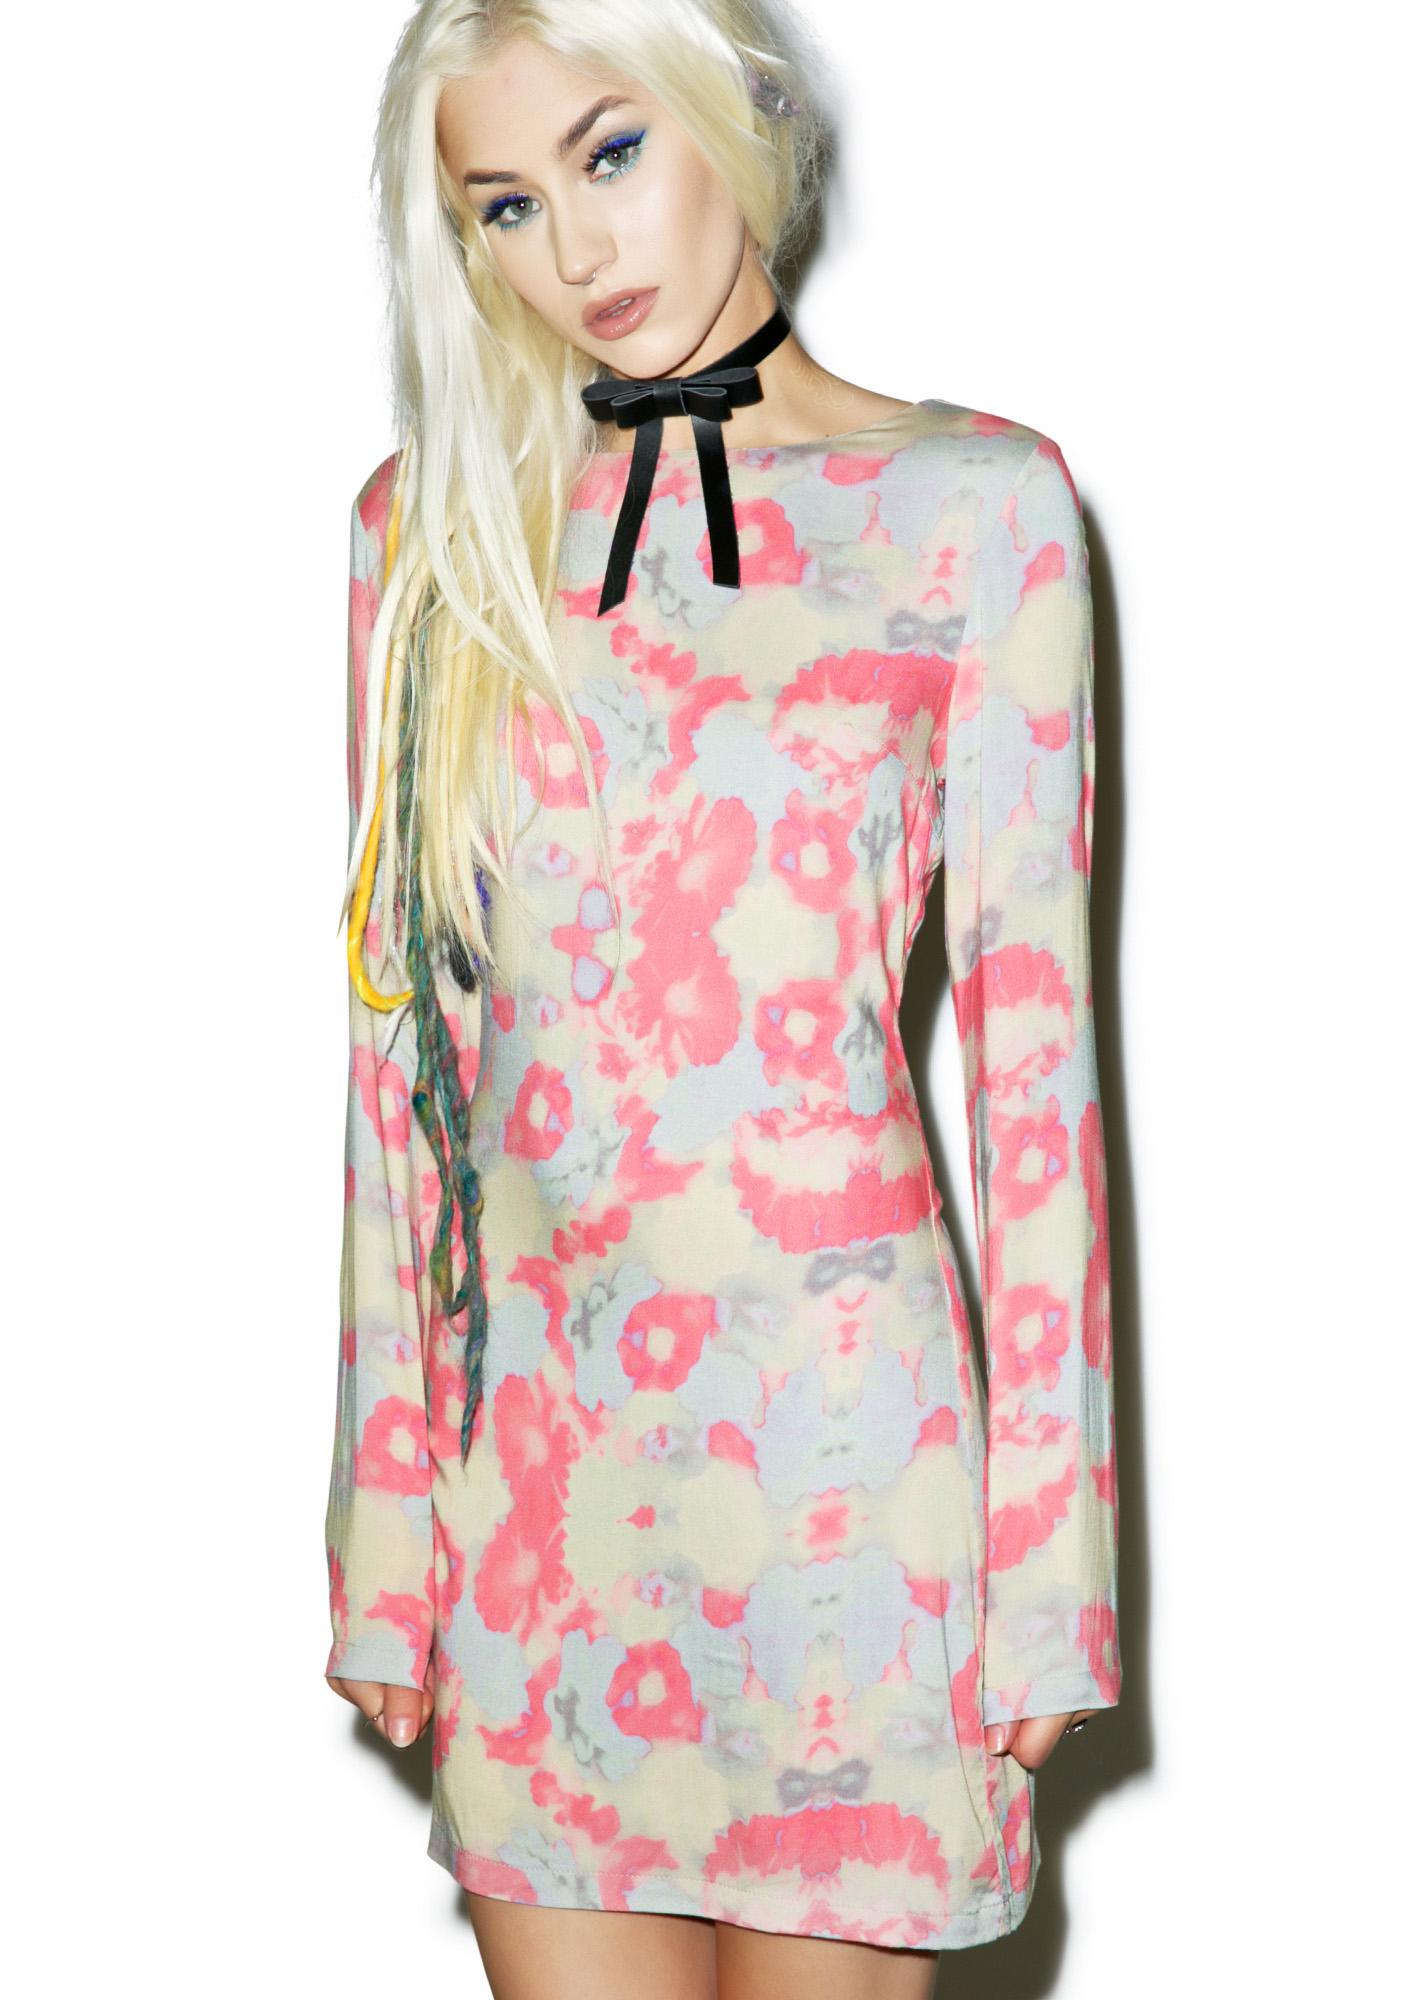 Insight Noni Melted Flower Dress